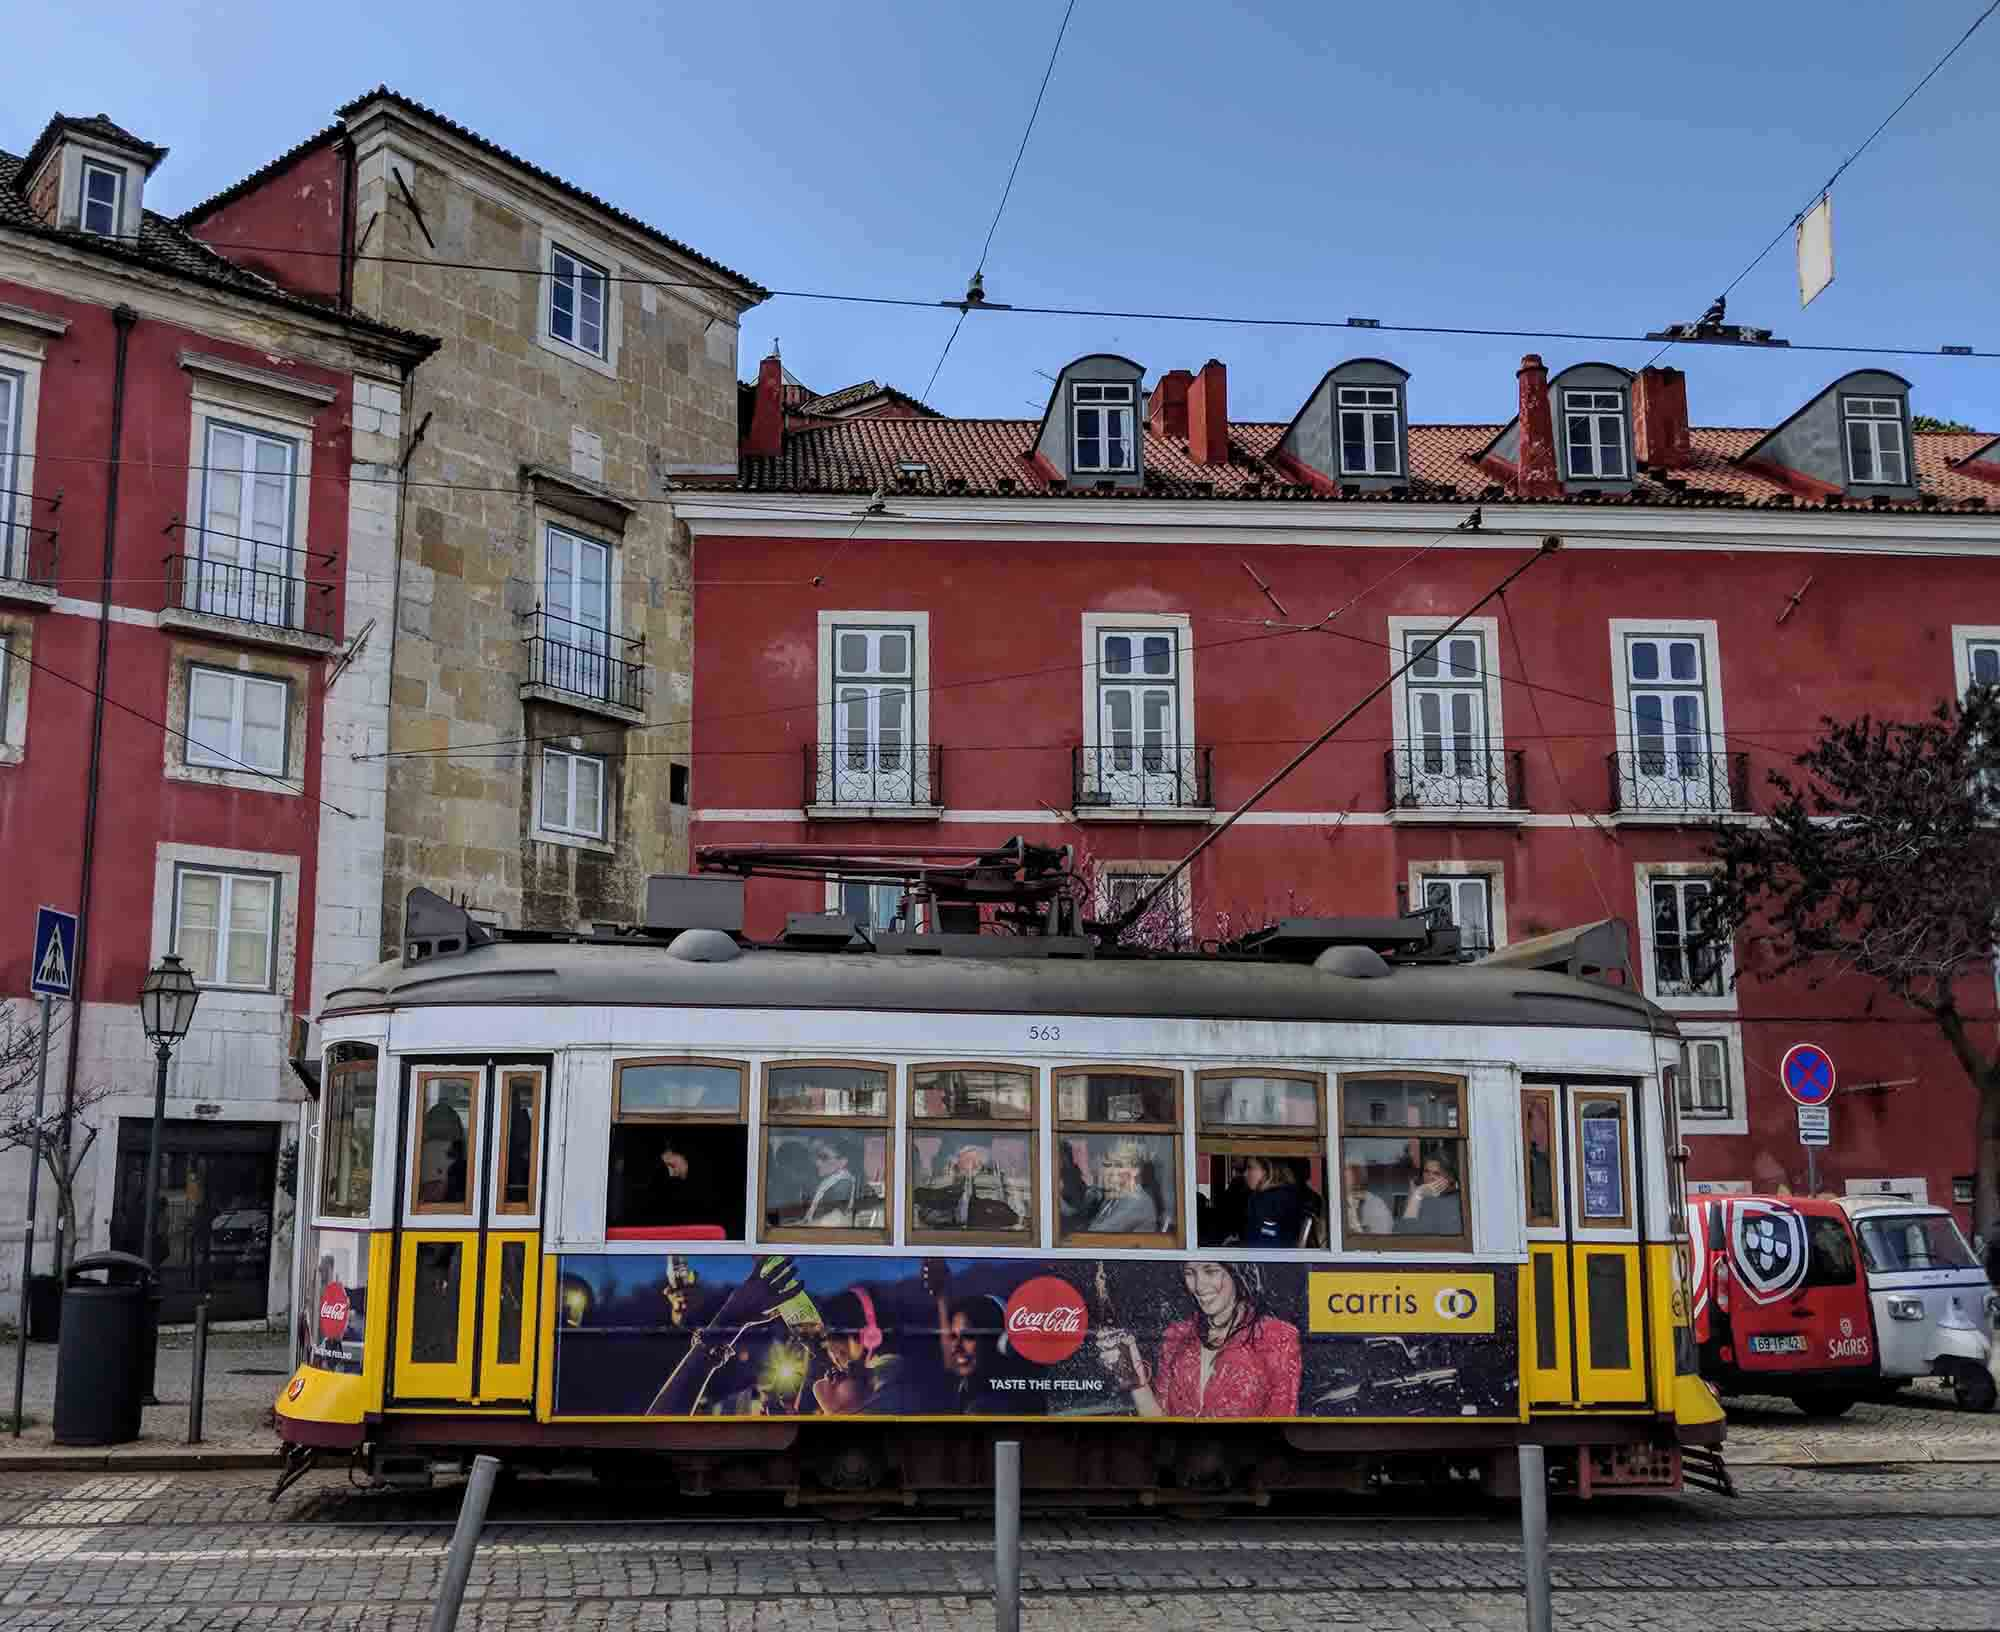 Lisbon tram in front of red building